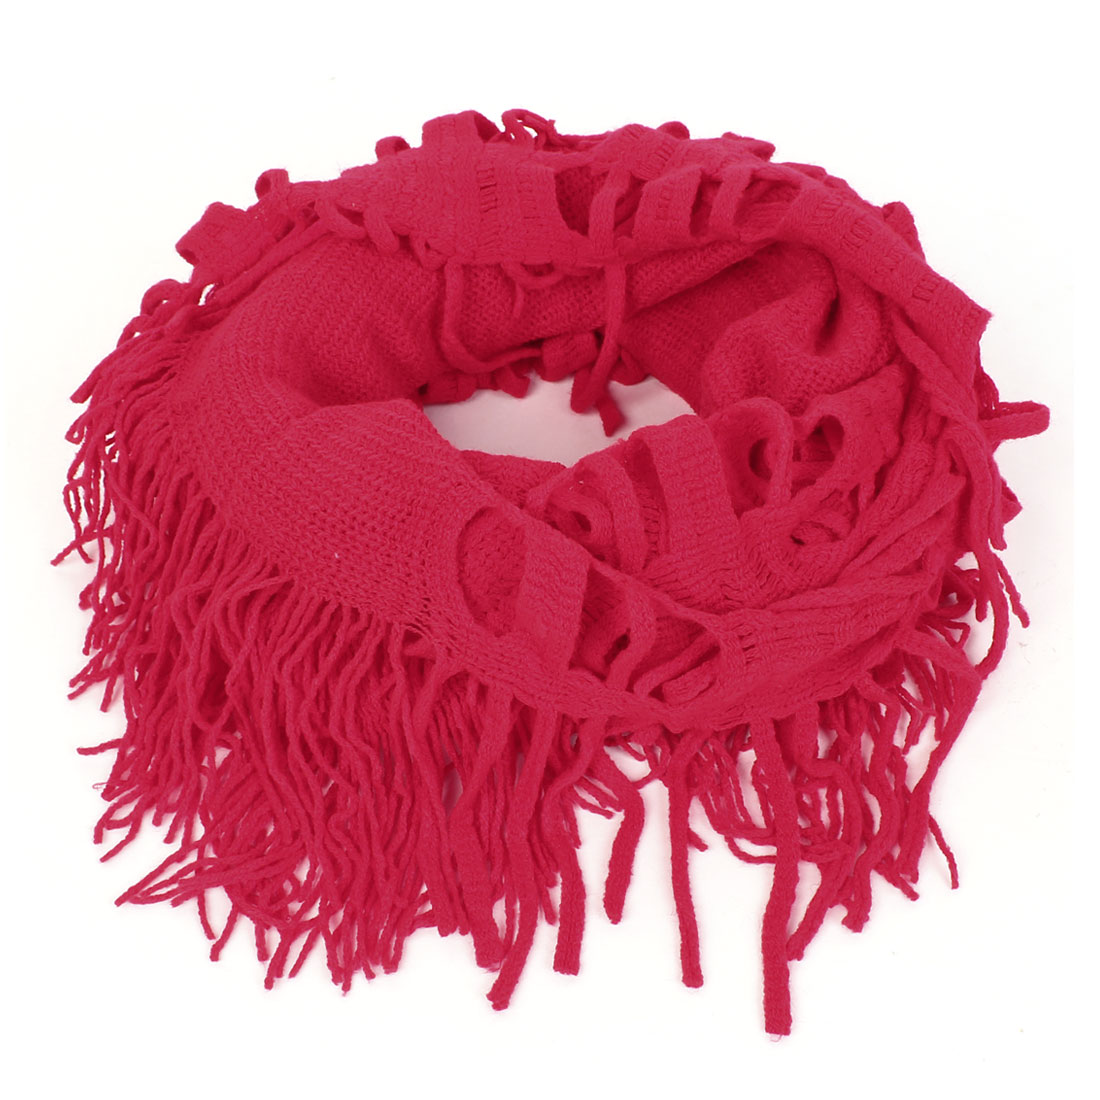 Winter Tassels Decorative Knitted Scarf Neckerchief Gift Red for Ladies